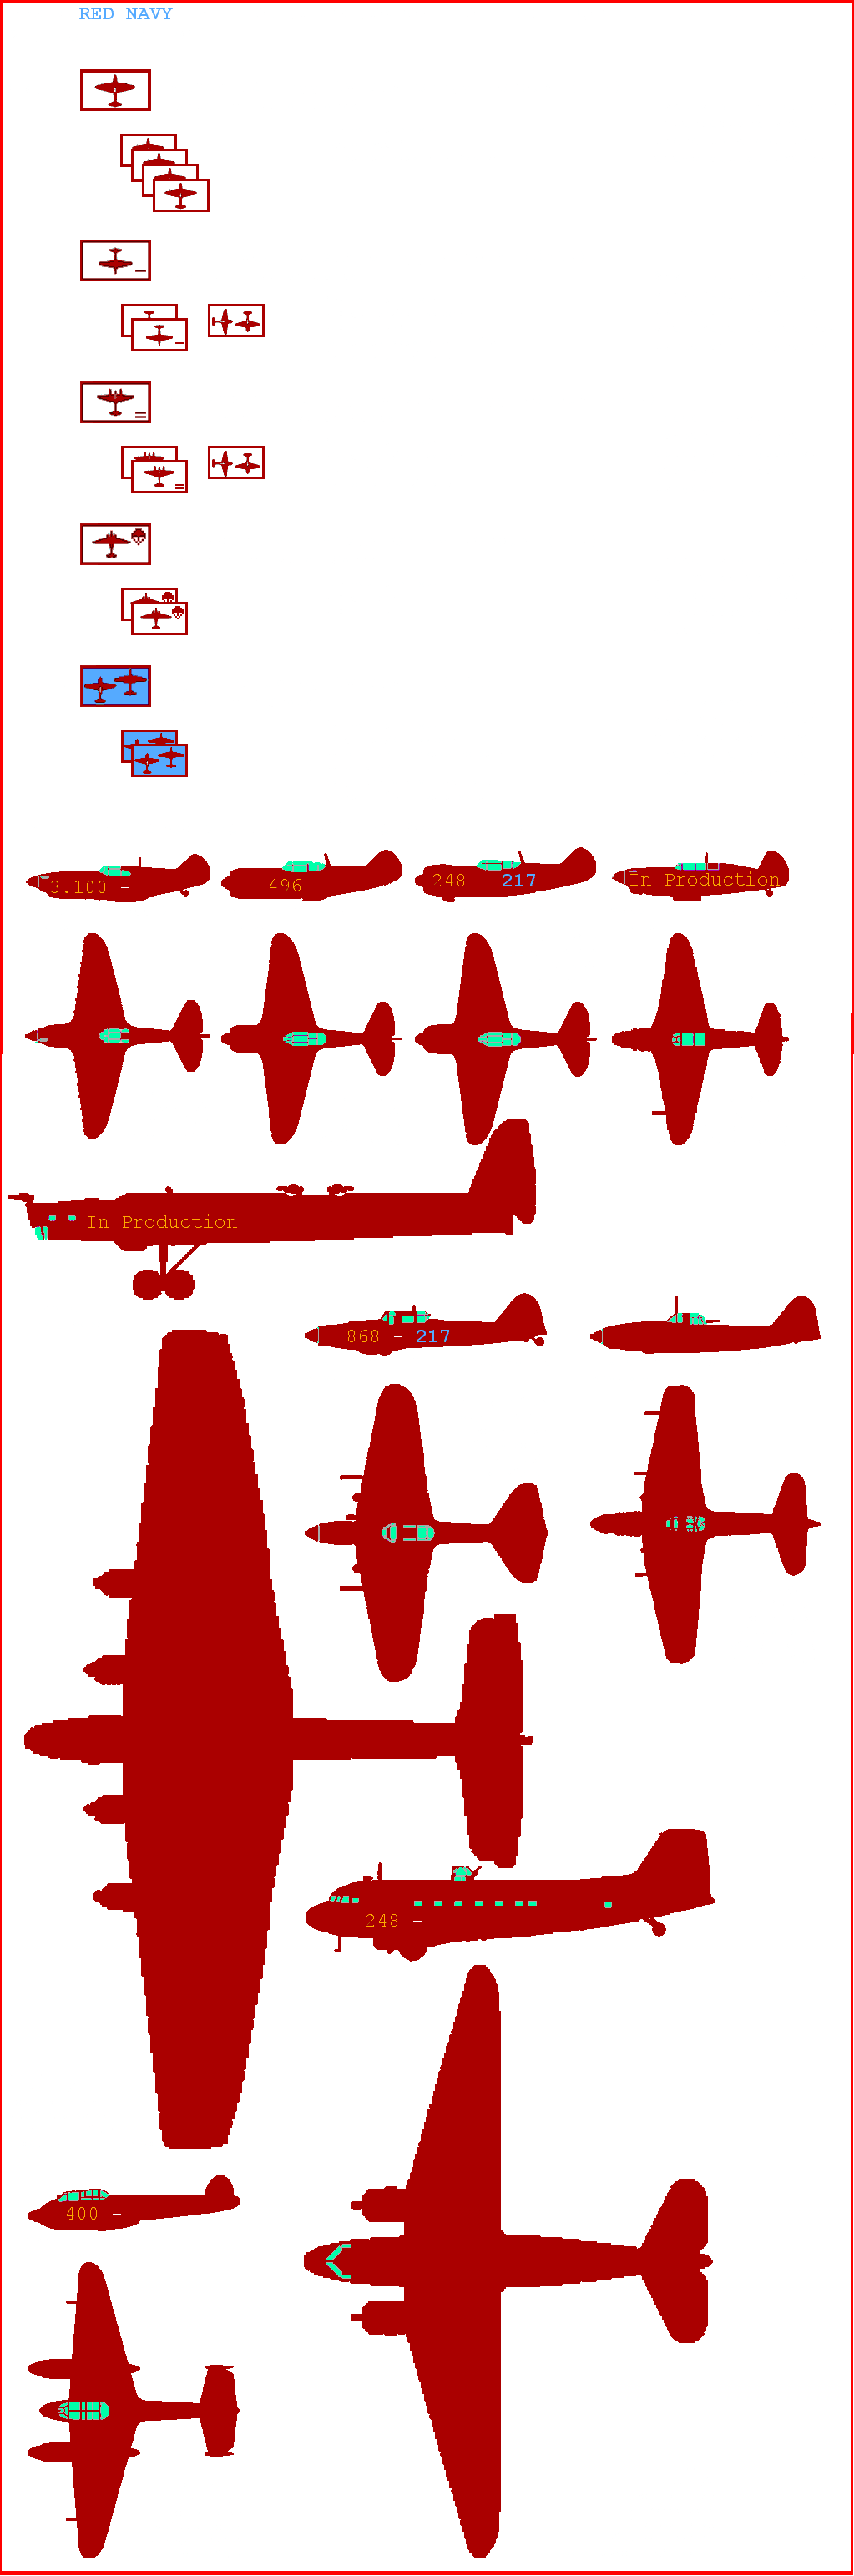 AviationDivisions-min.png